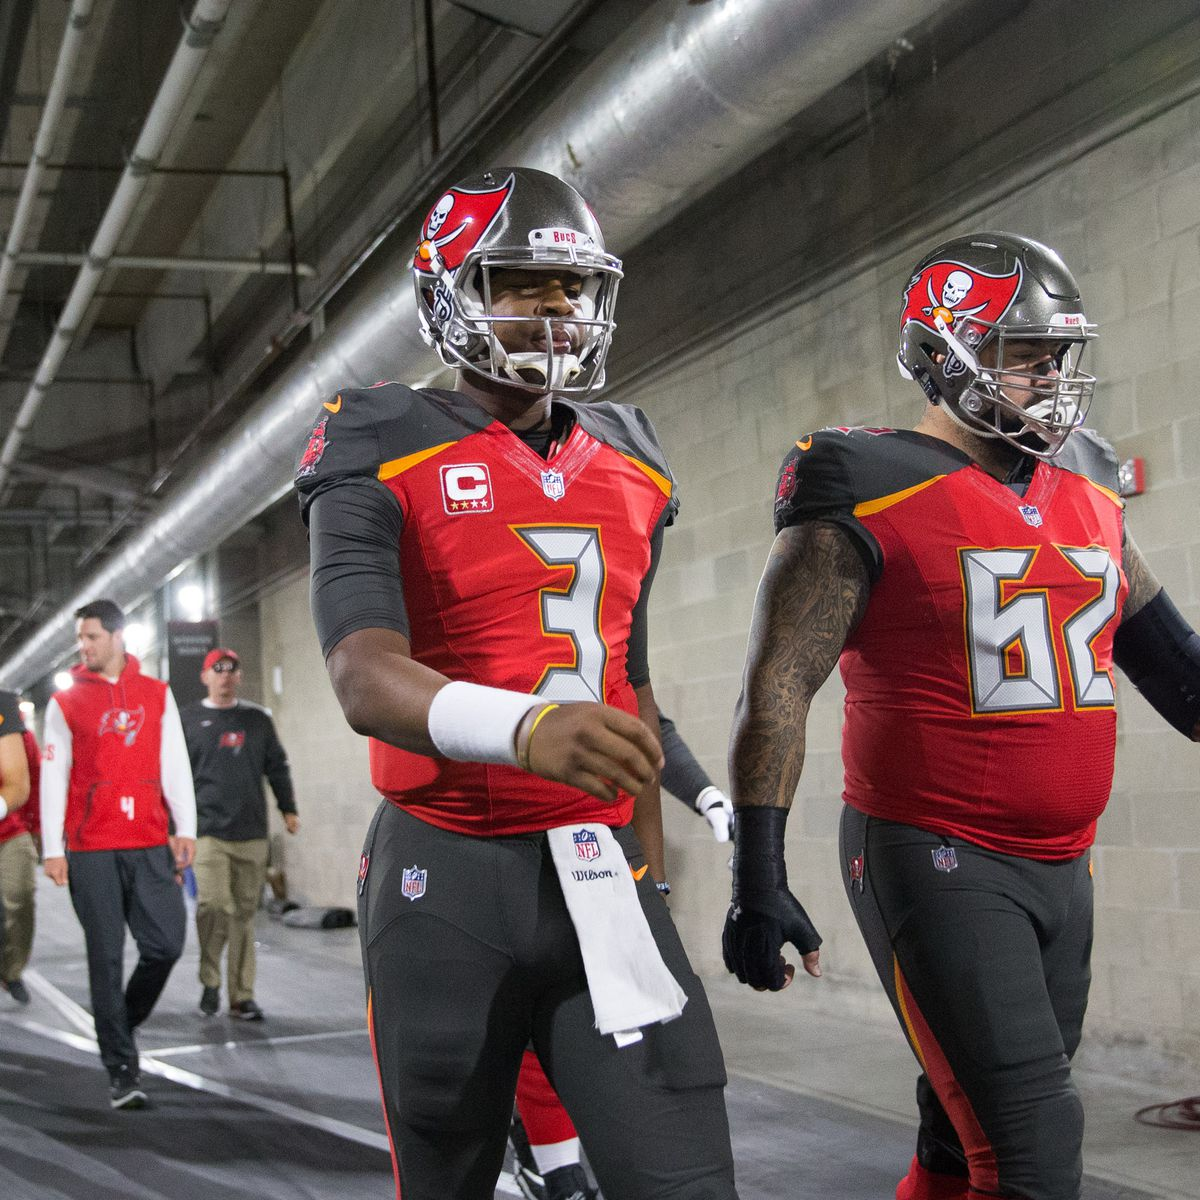 release date 2d5bd 95dce Bucs uniform ranked 32nd among NFL teams, because there isn ...